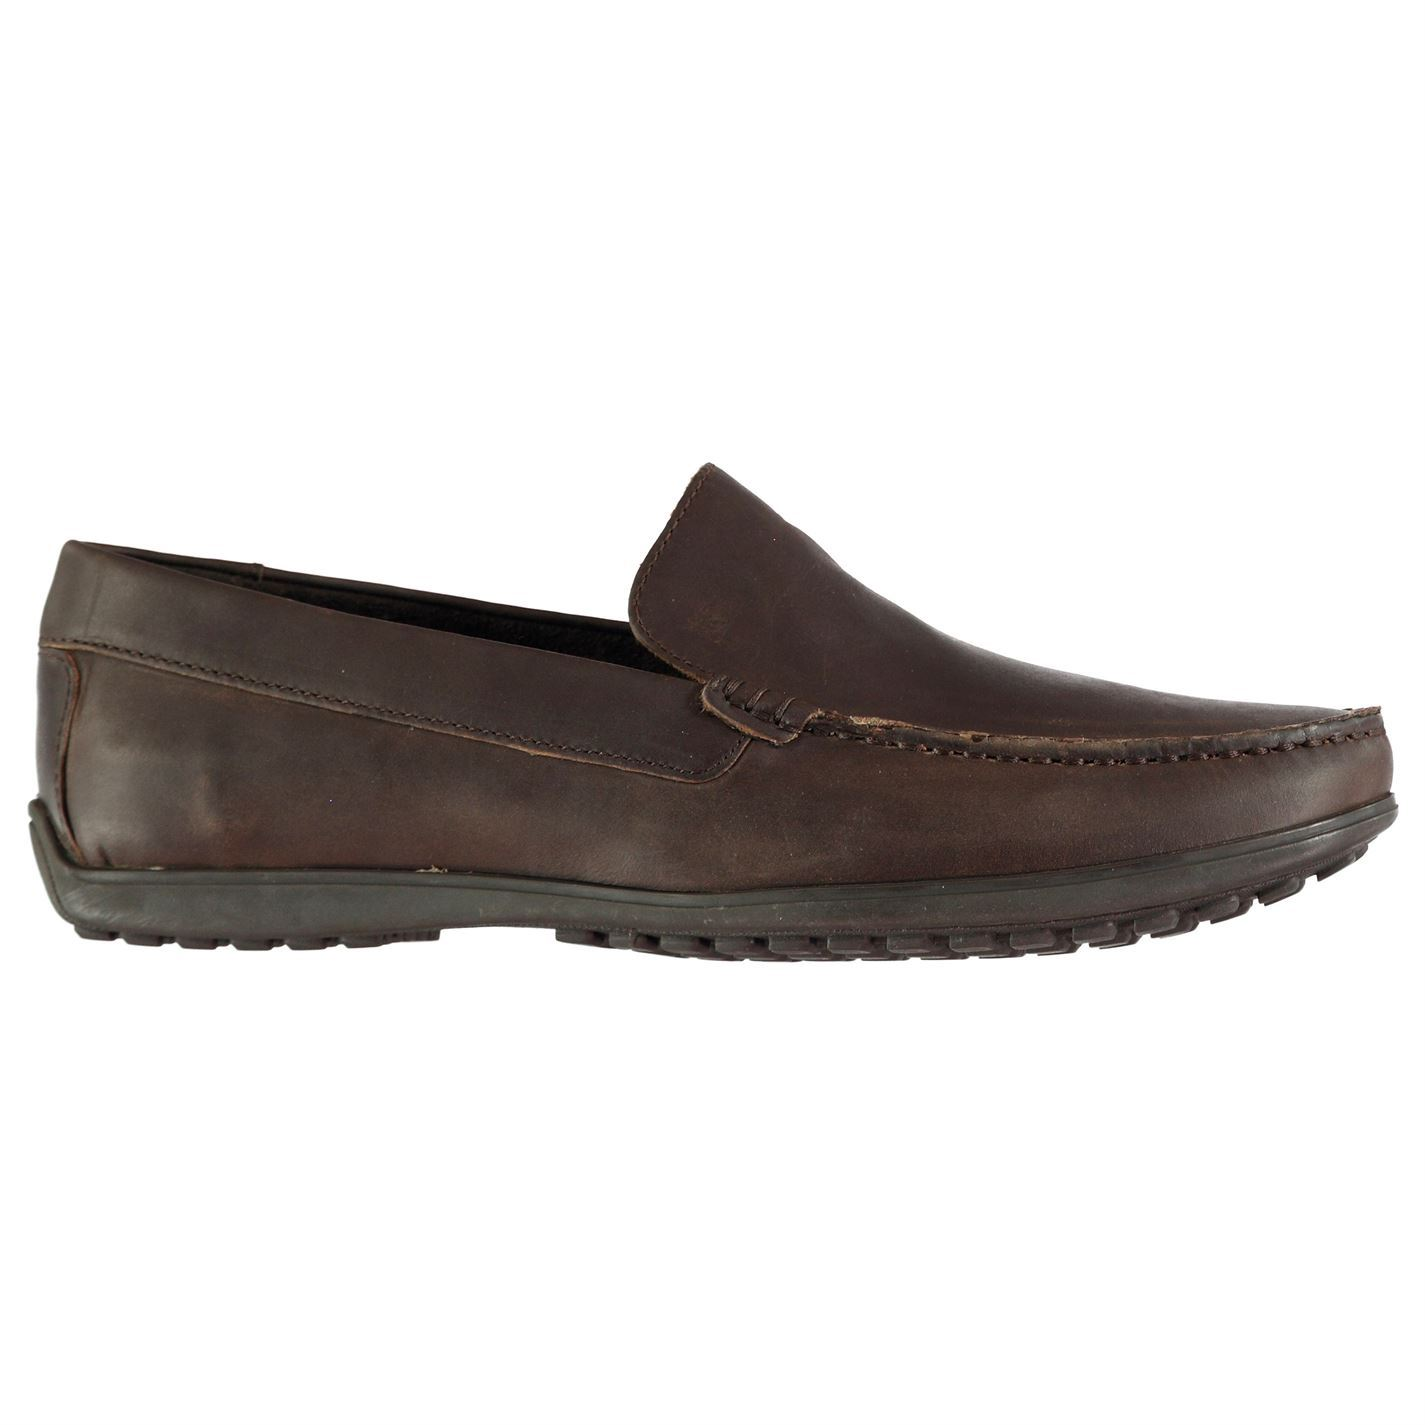 e262b0046f9 Details about Mens Rockport Bayley Venetian Shoes Loafers Textured New